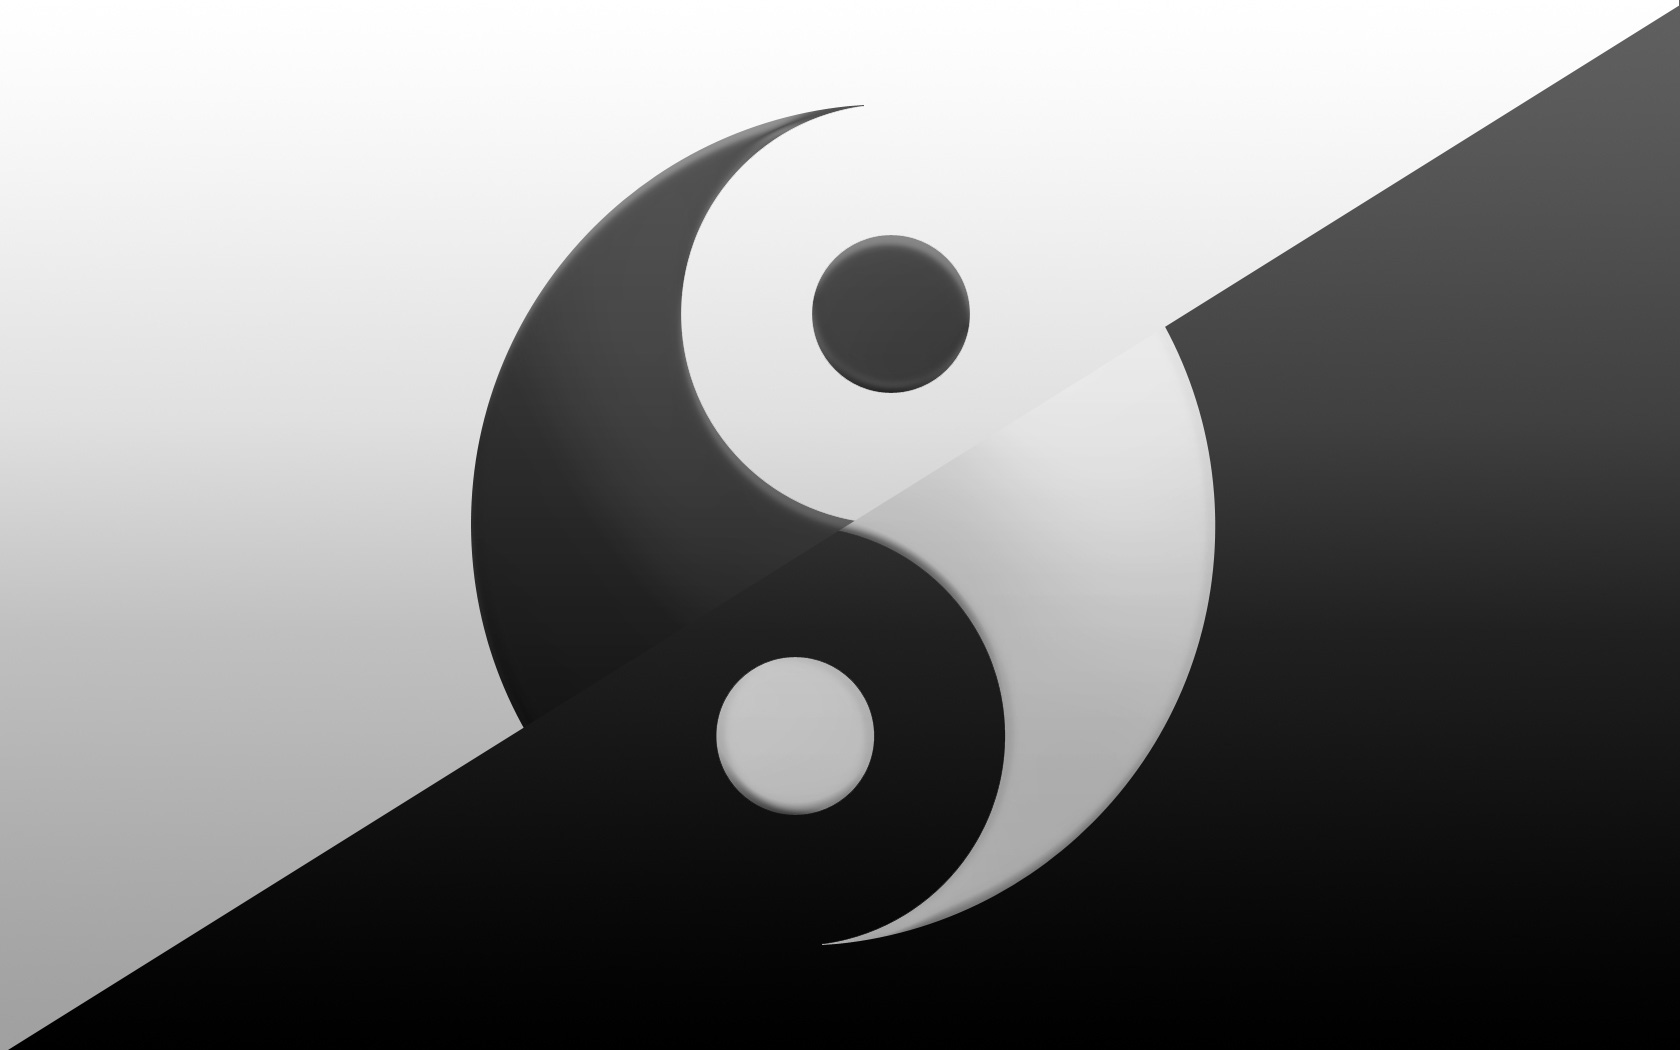 Yin Yang Wallpaper Tumblr Hd Olivero